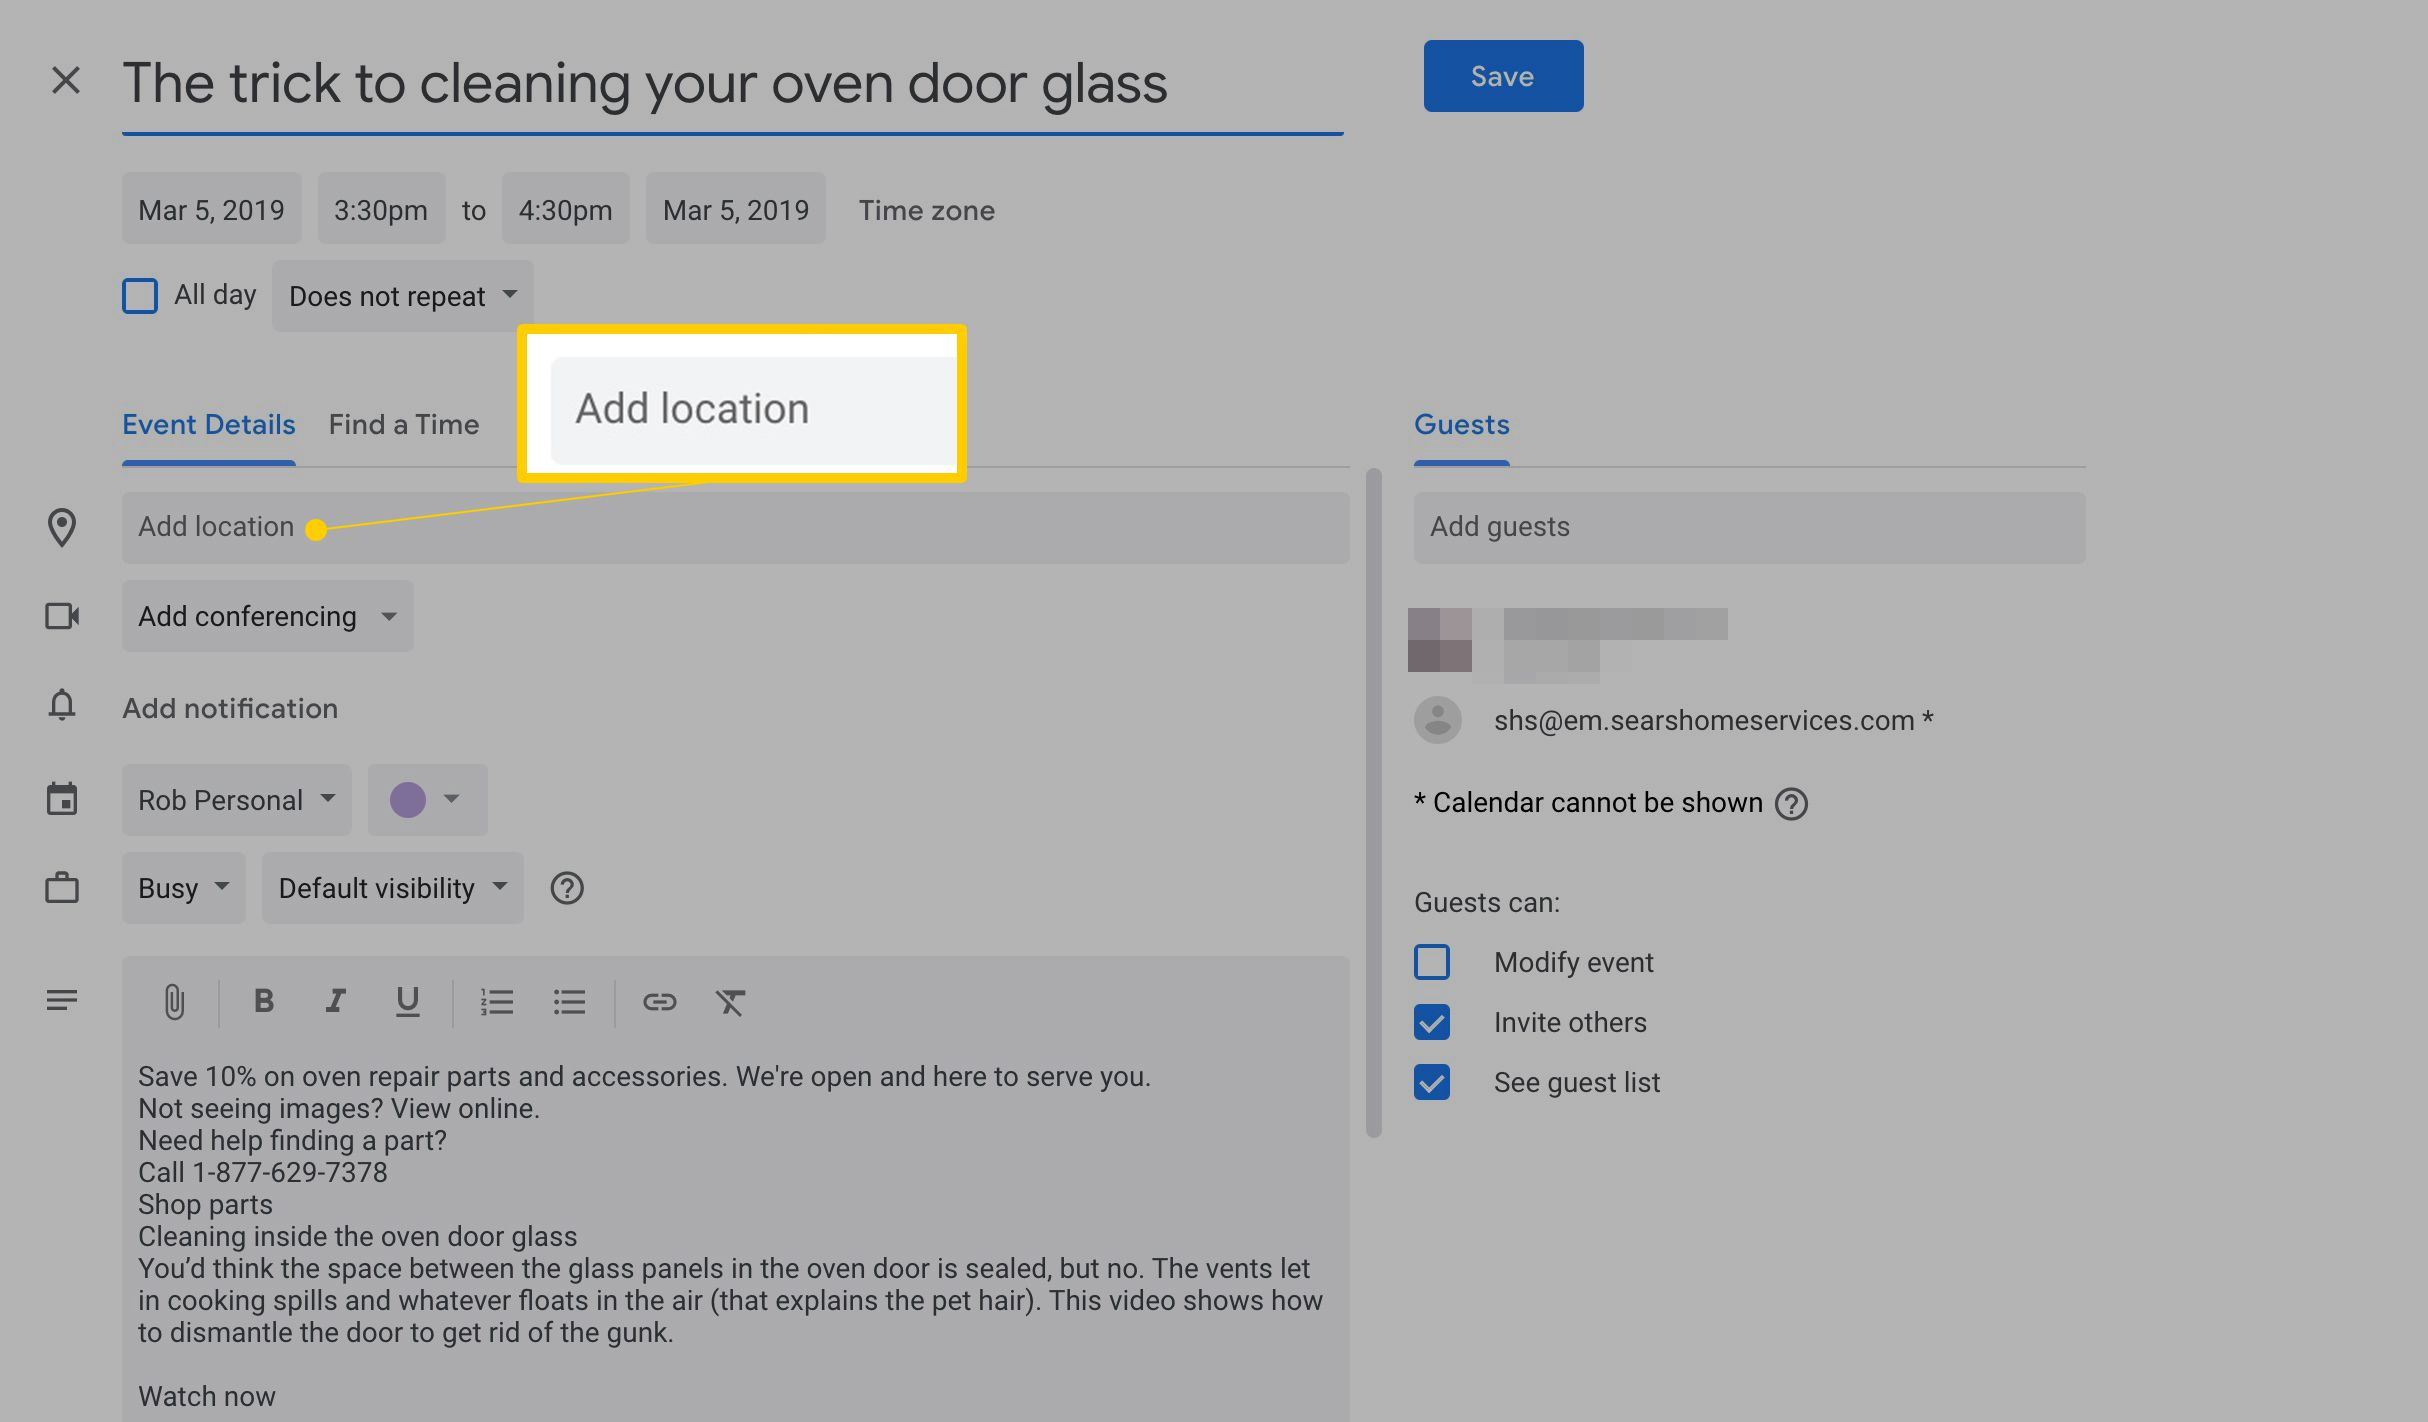 How To Create A Google Calendar Event From A Gmail Message In Google Calender Adding Notes